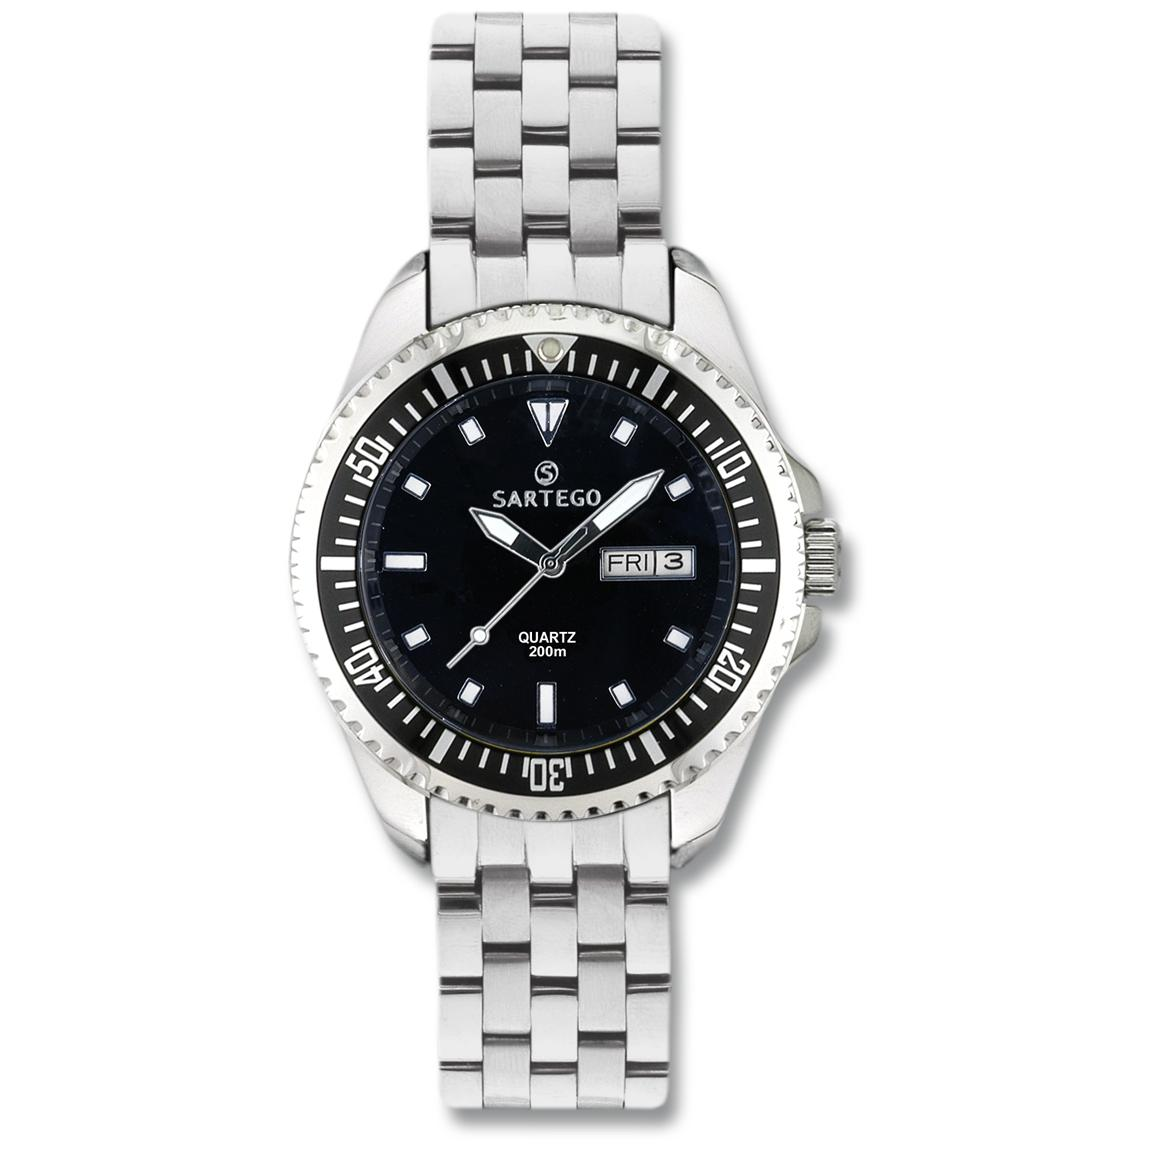 Men's Sartego® Ocean Master Watch, Black Dial